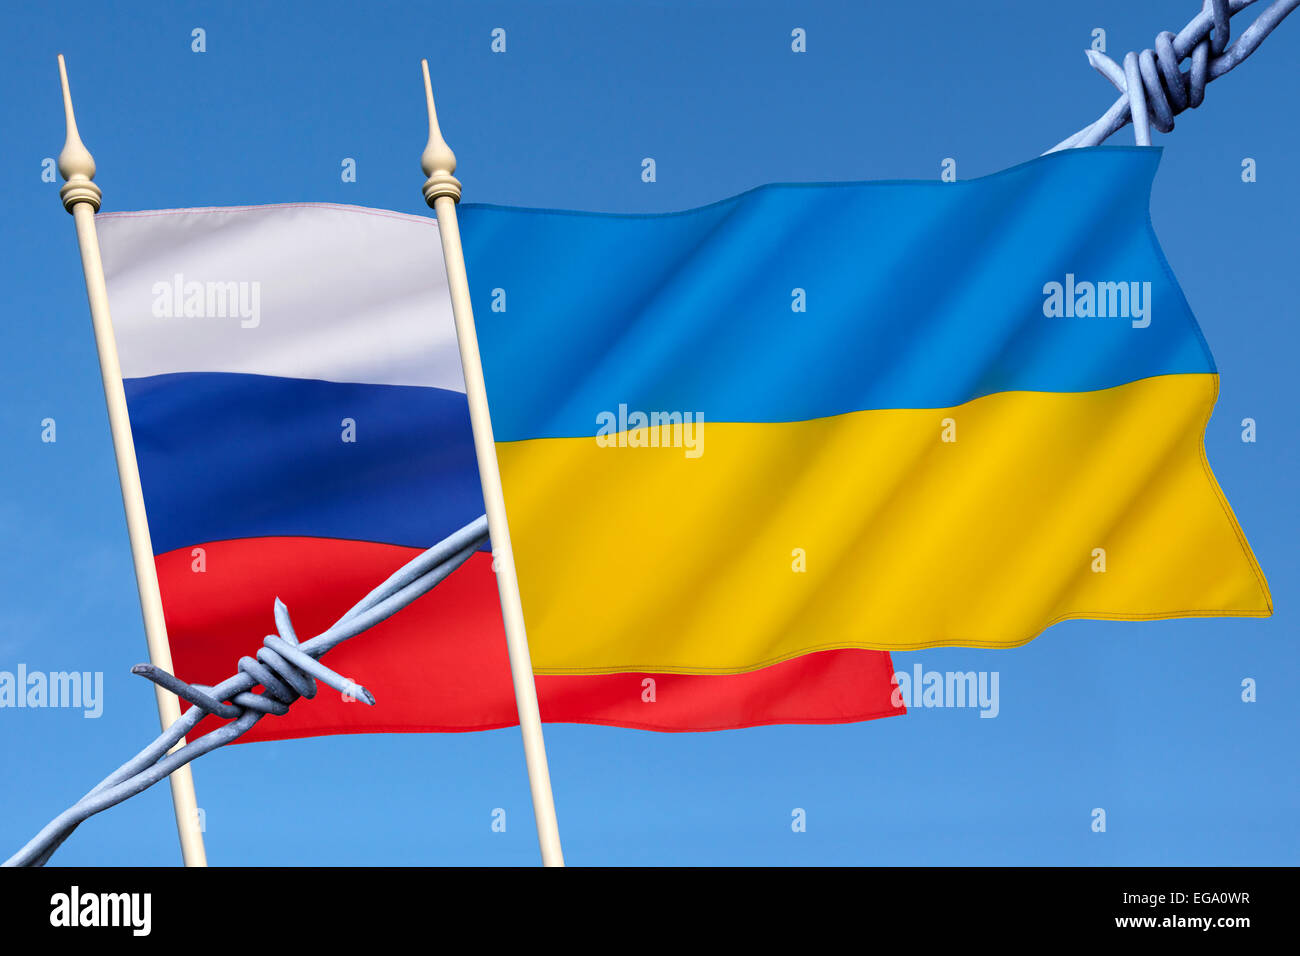 Flags of Russia and Ukraine - Stock Image